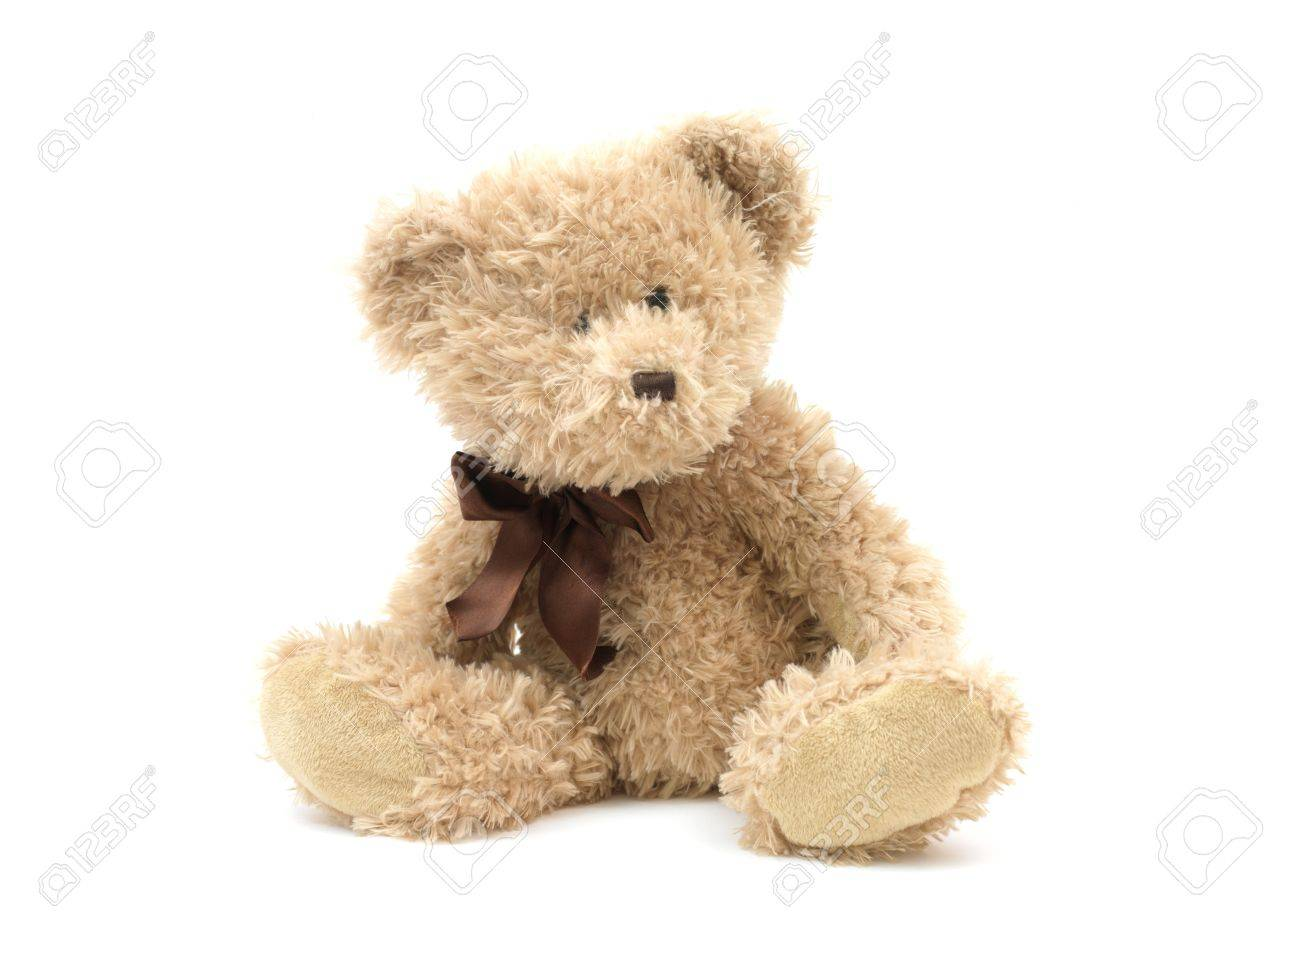 A teddy bear isolated against a white background Stock Photo - 10614191